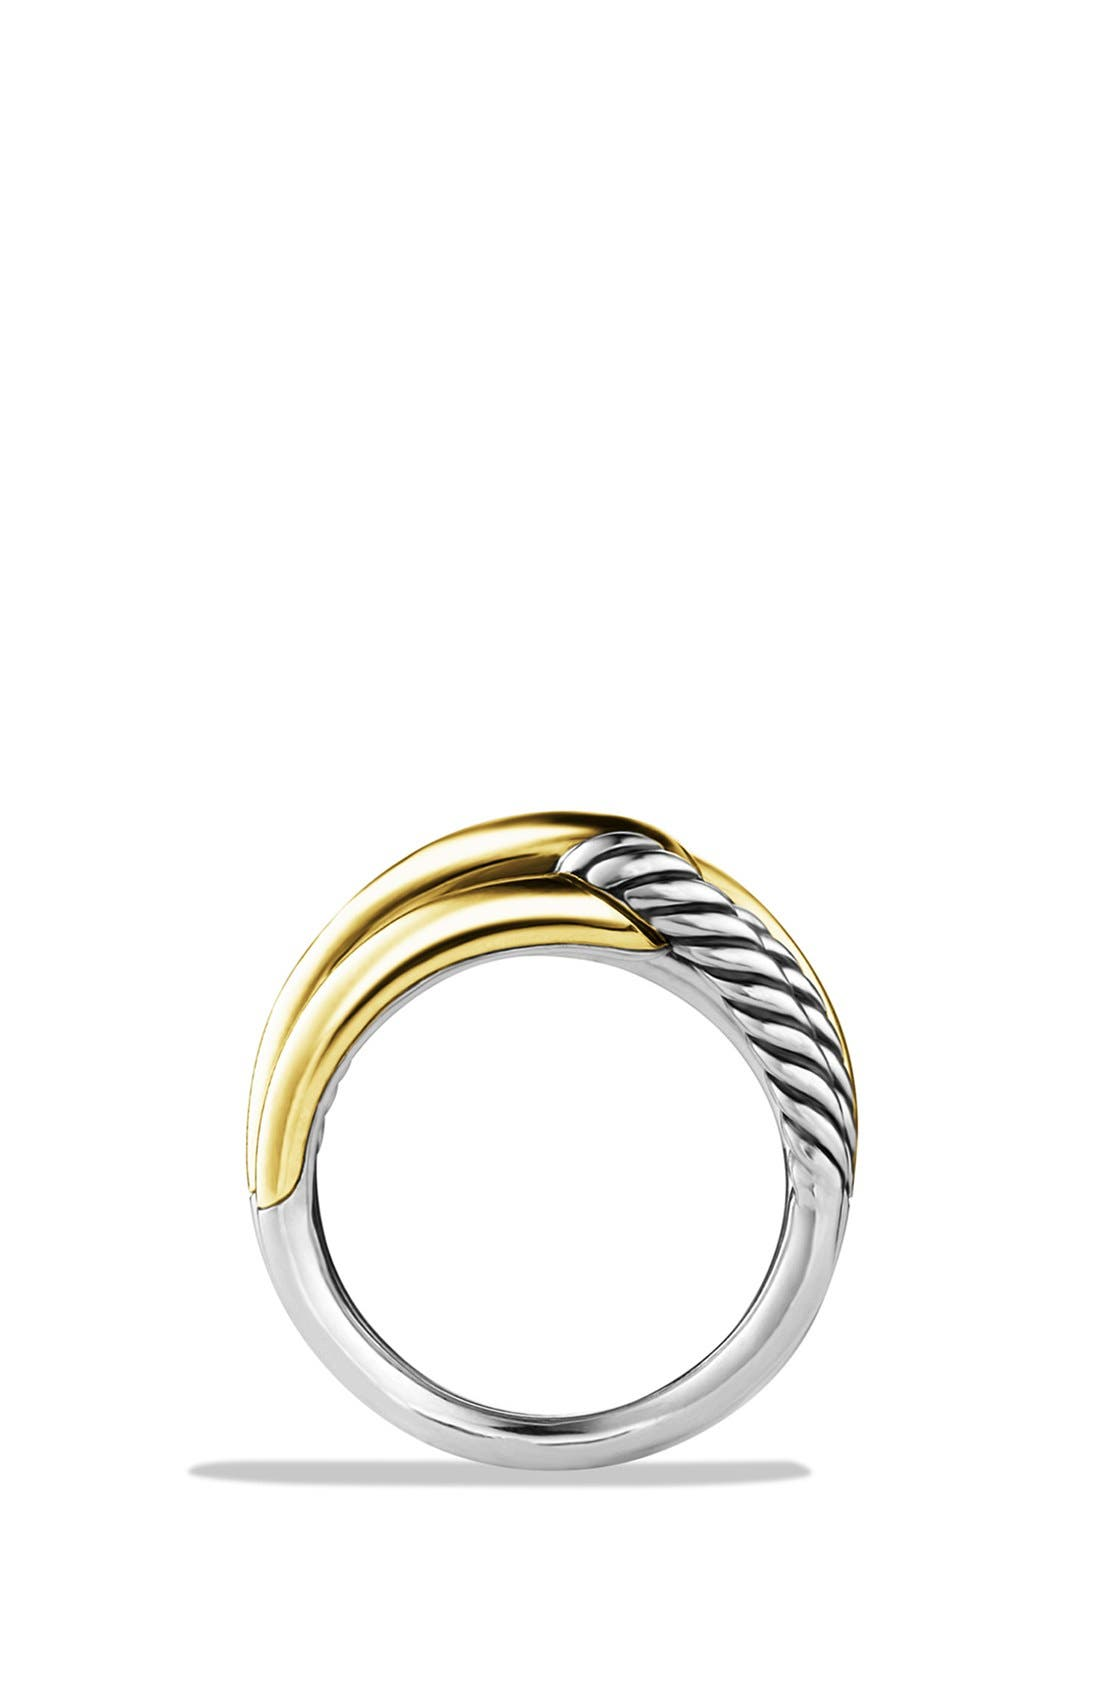 Alternate Image 2  - David Yurman 'Labyrinth' Double-Loop Ring with Gold